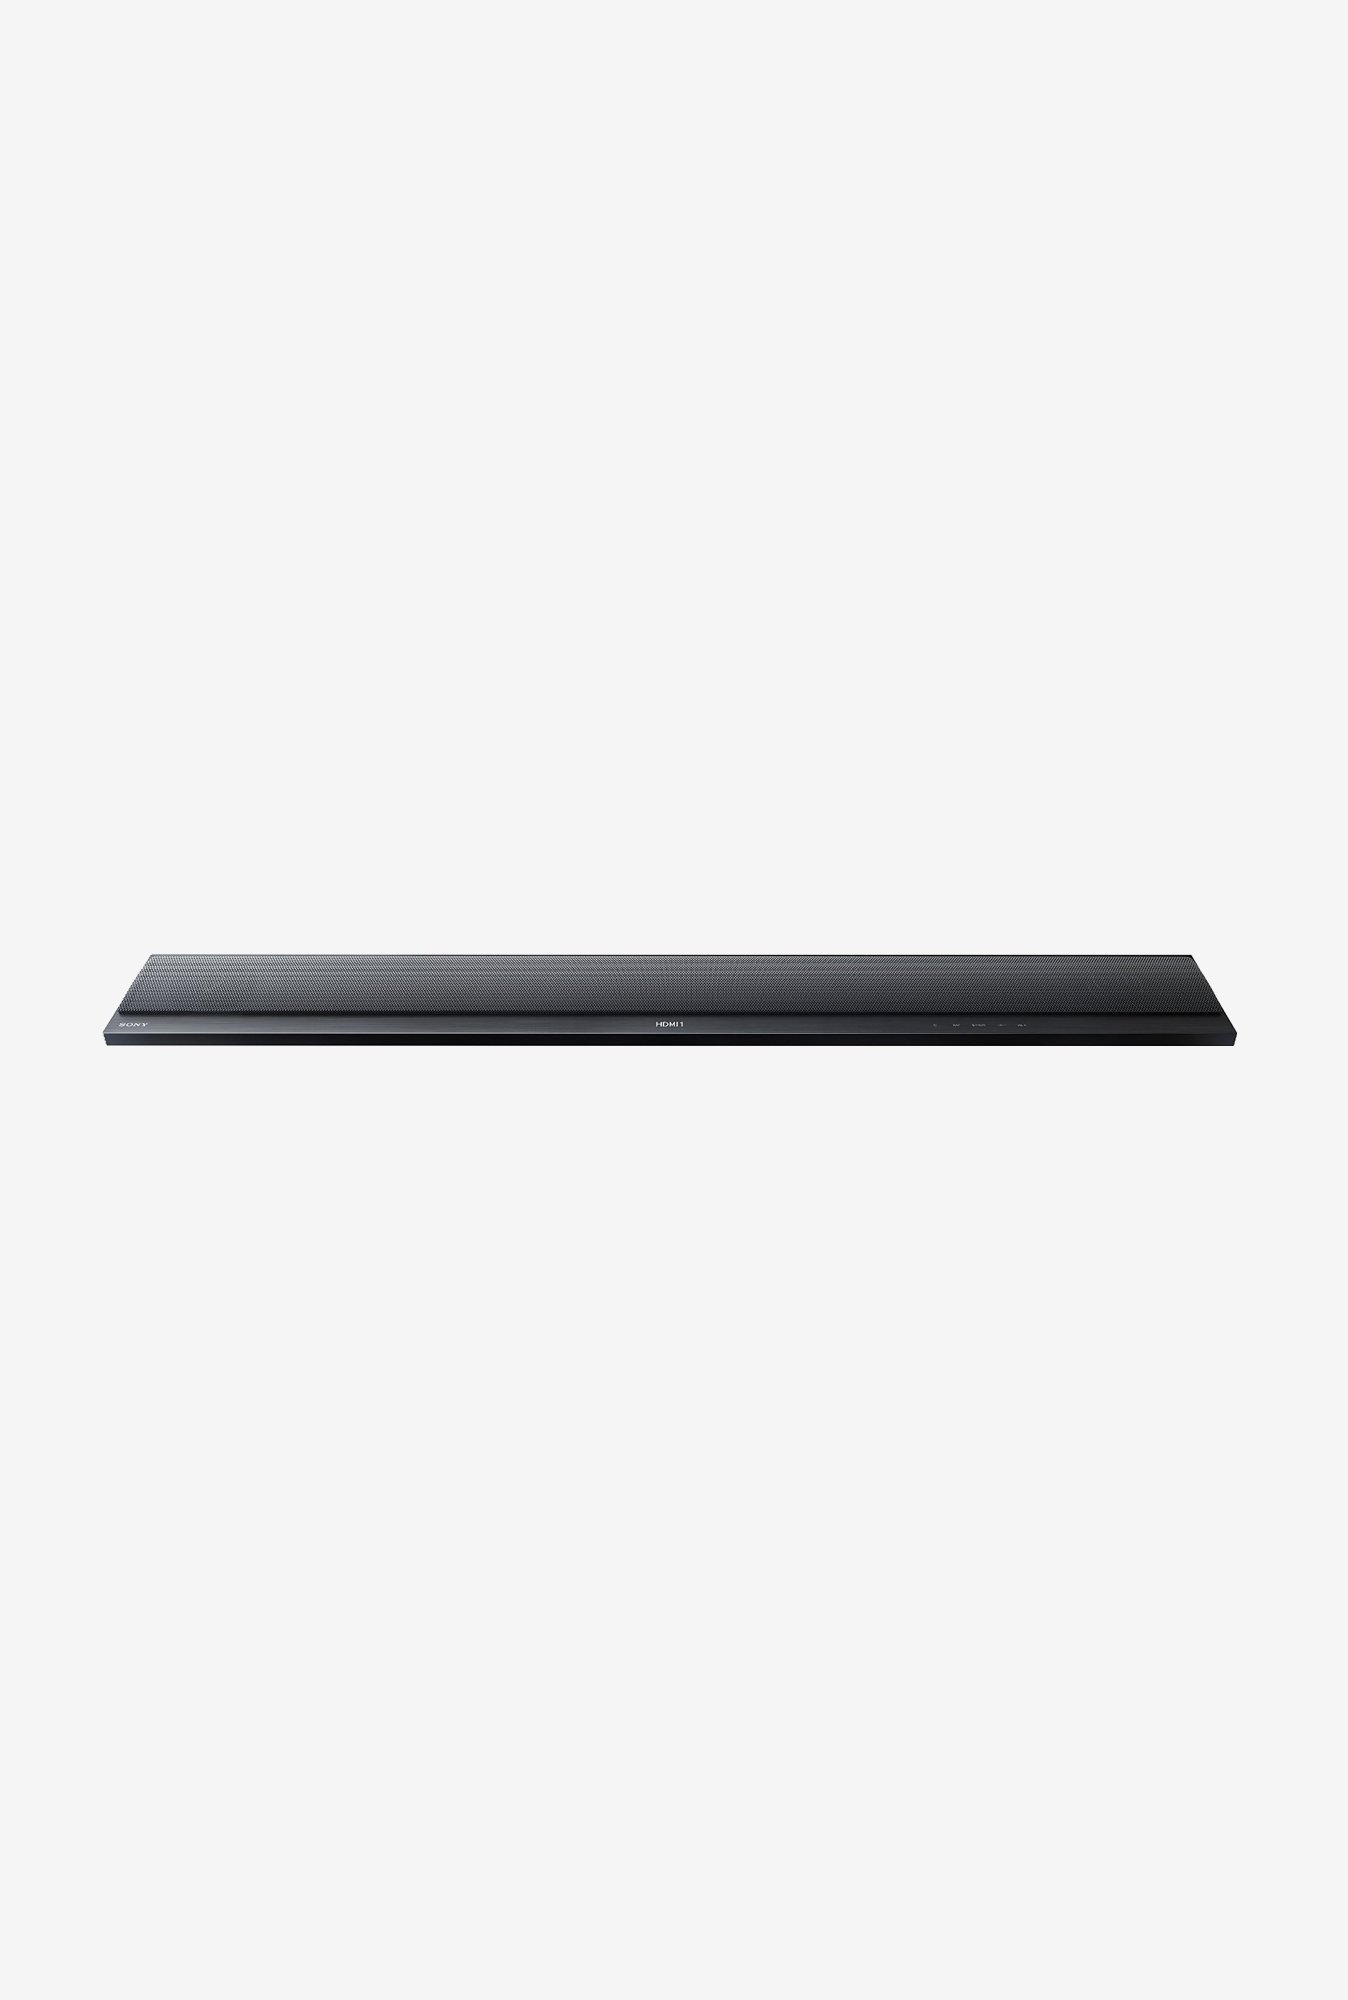 Sony HT-CT790 2.1 ch Soundbar with Subwoofer (Black)